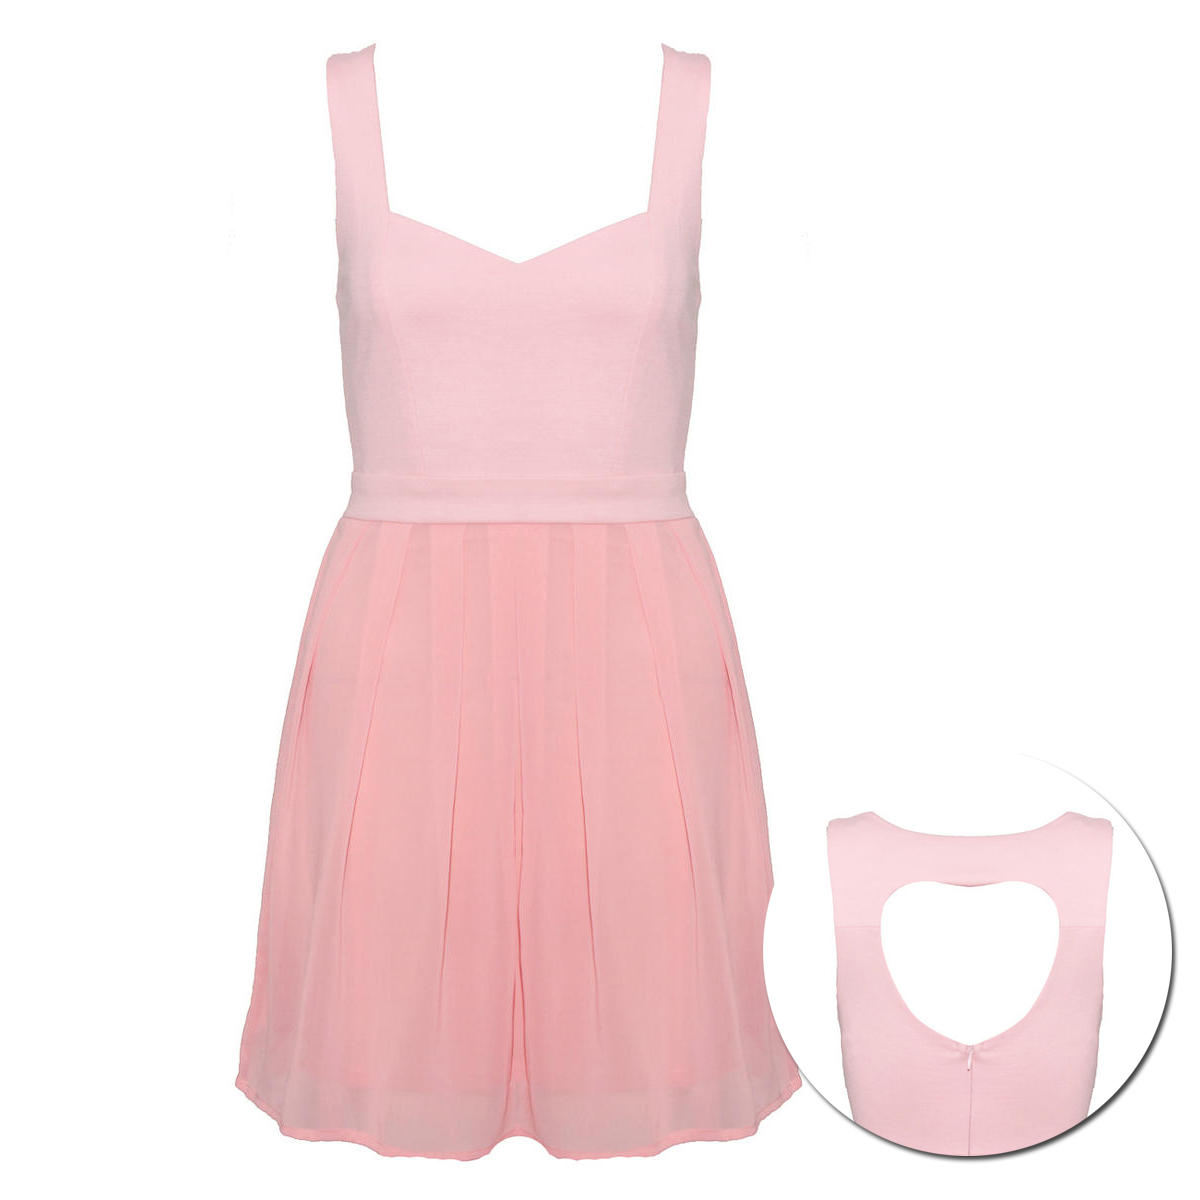 Pink Heart Cut Out Pleat Dress Preview